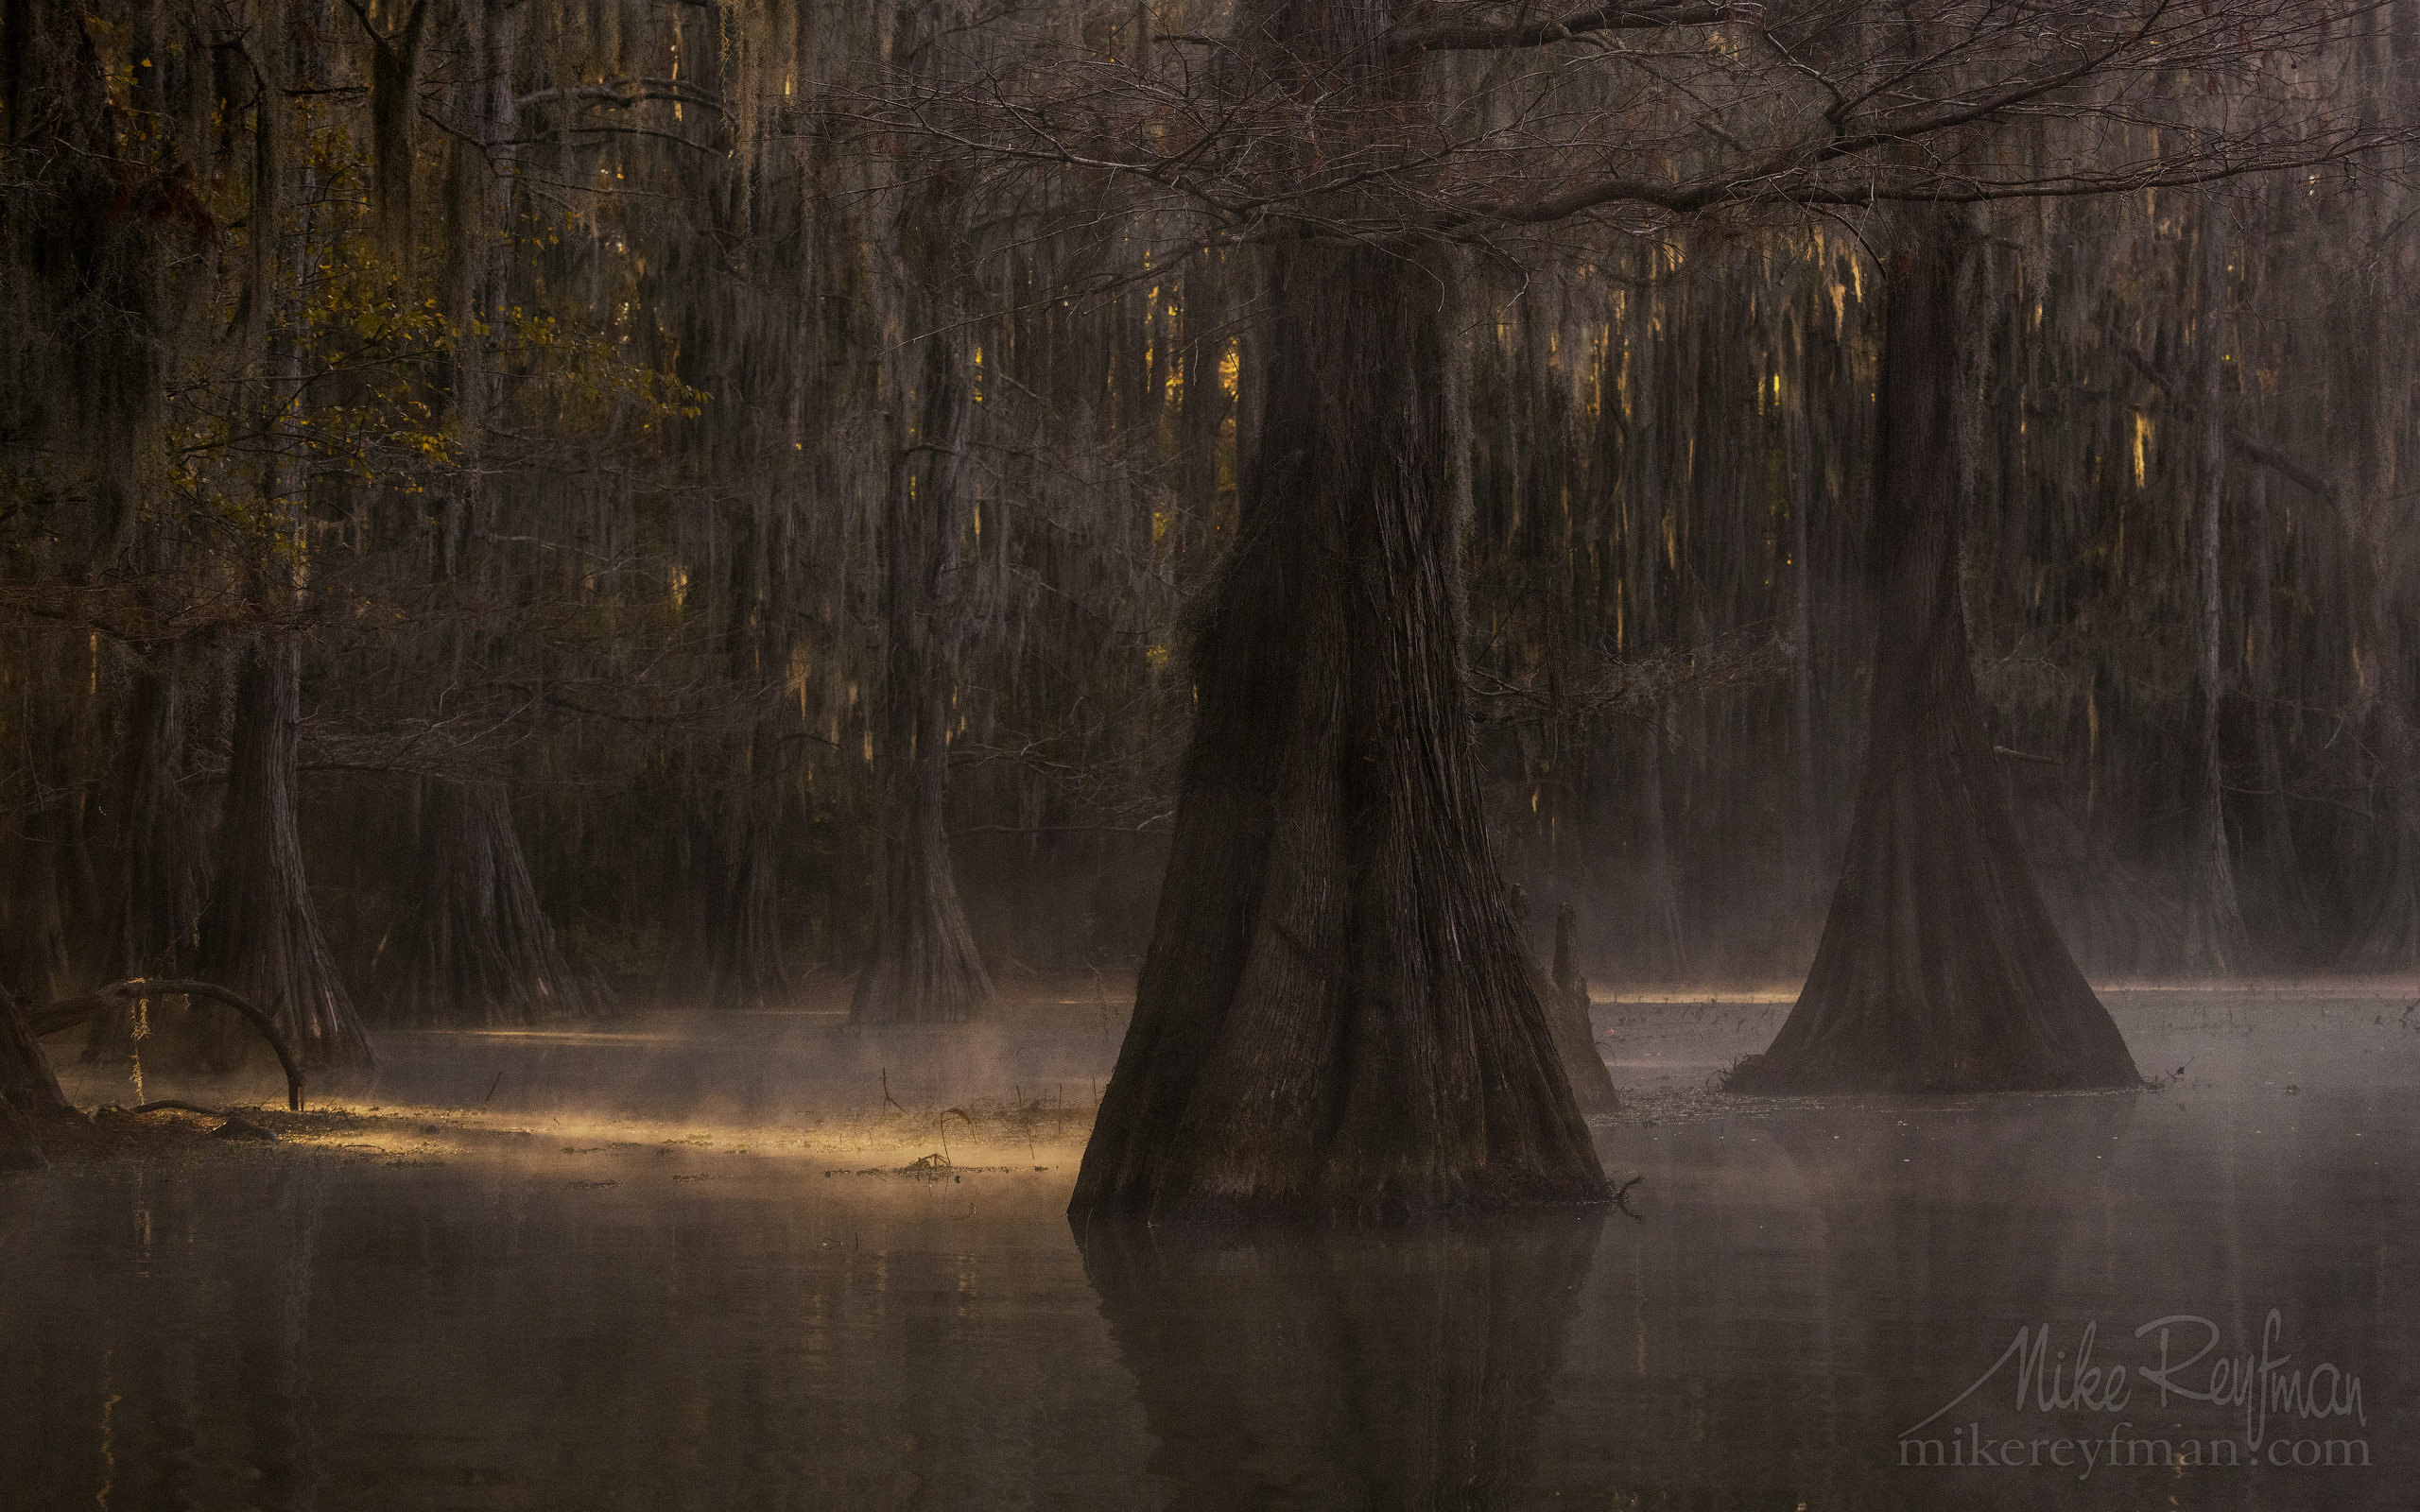 Bald Cypress trees in the swamp. Foggy morning on Caddo Lake, Texas, US 037-LT1-50A3444.jpg - Bold Cypress and Tupelo Trees in the swamps of Atchafalaya River Basin. Caddo, Martin and Fousse Lakes. Texas/Louisiana, USA. - Mike Reyfman Photography